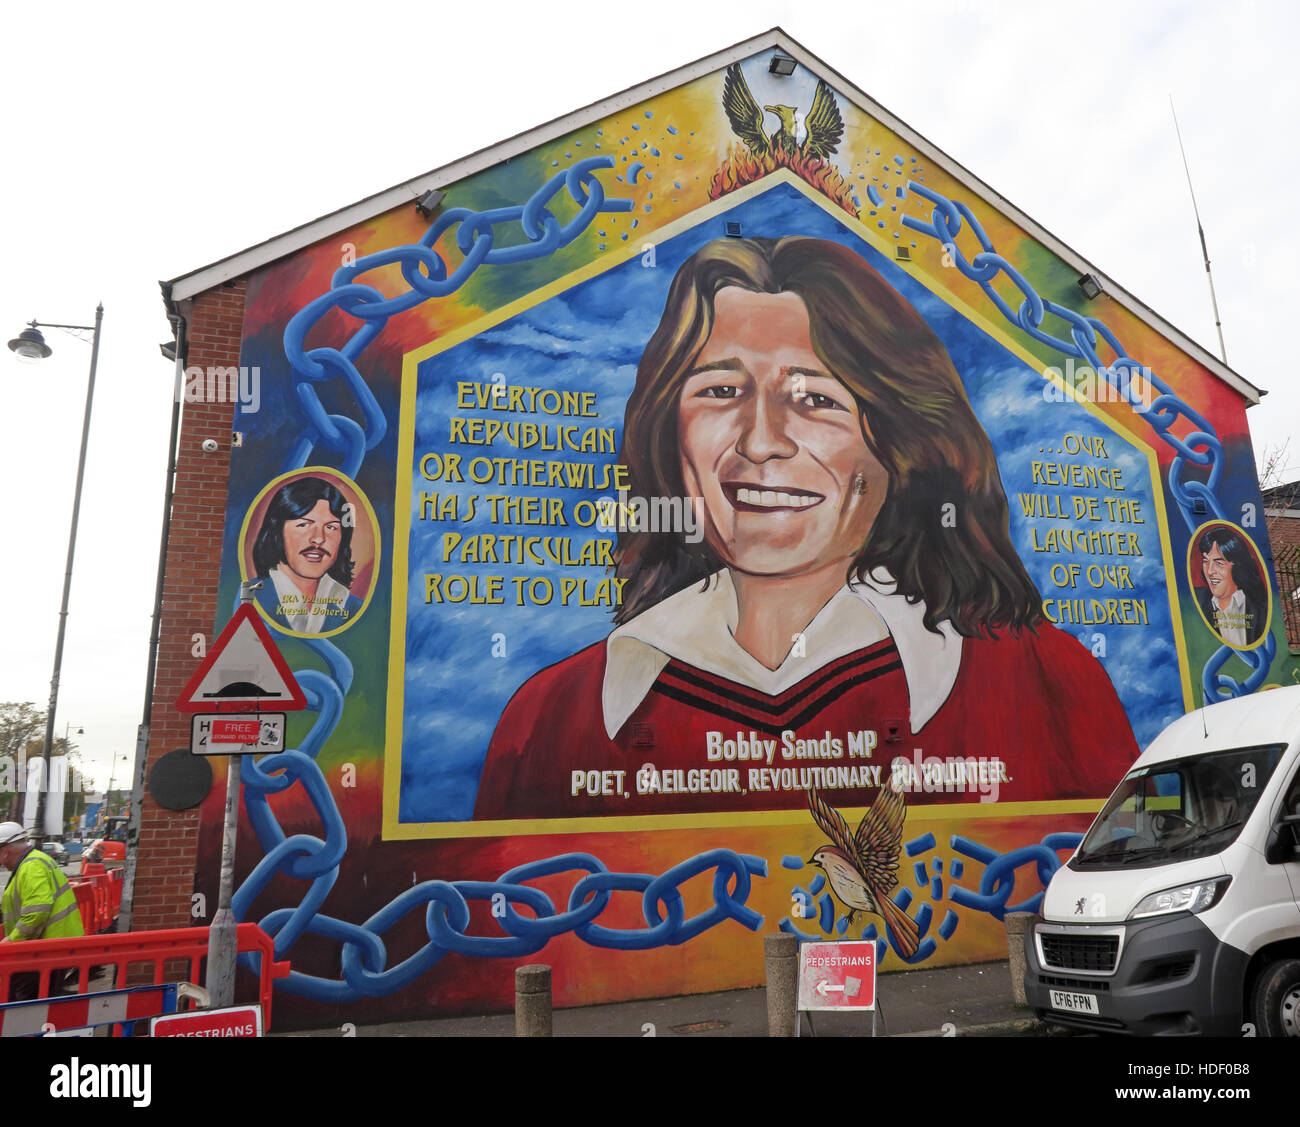 Road,painting,graffiti,resistance,IRA,peace,Northern Ireland,NI,UK,St,street,Eire,Irish,Republic,Irish Republic,conflict,Irish Republican Army,Political Change,MP,Bobby Sands,hero,martyr,soldier,terrorist,hunger striker,hunger,striker,GoTonySmith,@HotpixUK,Tony,Smith,UK,GB,Great,Britain,United,Kingdom,Irish,British,Ireland,problem,with,problem with,issue with,NI,Northern,Northern Ireland,Belfast,City,Centre,Art,Artists,the,troubles,The Troubles,Good Friday Agreement,Peace,honour,painting,wall,walls,tribute,republicanism,Fight,Justice,West,Beal,feirste,martyrs,social,tour,tourism,tourists,urban,six,counties,6,backdrop,county,Antrim,occupation,good,Friday,agreement,peace,reconciliation,IRA,terror,terrorists,genocide,Buy Pictures of,Buy Images Of,Images of,Stock Images,Tony Smith,United Kingdom,Great Britain,British Isles,republican cause